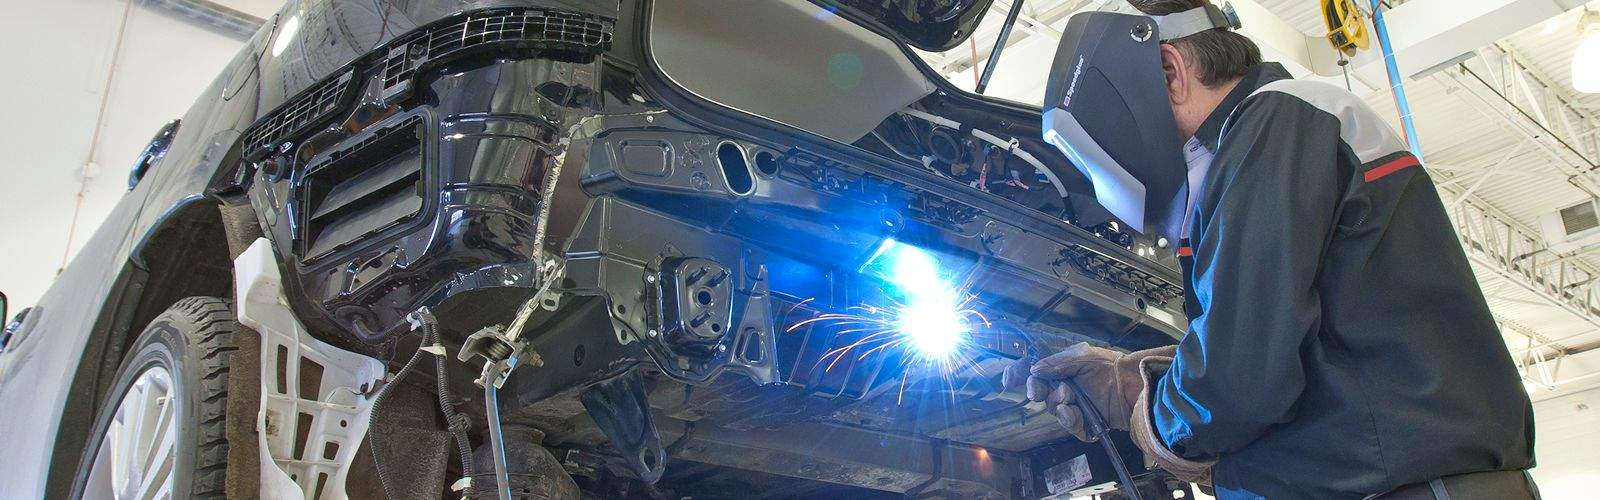 collision-and-auto-body-repair-collision-centre